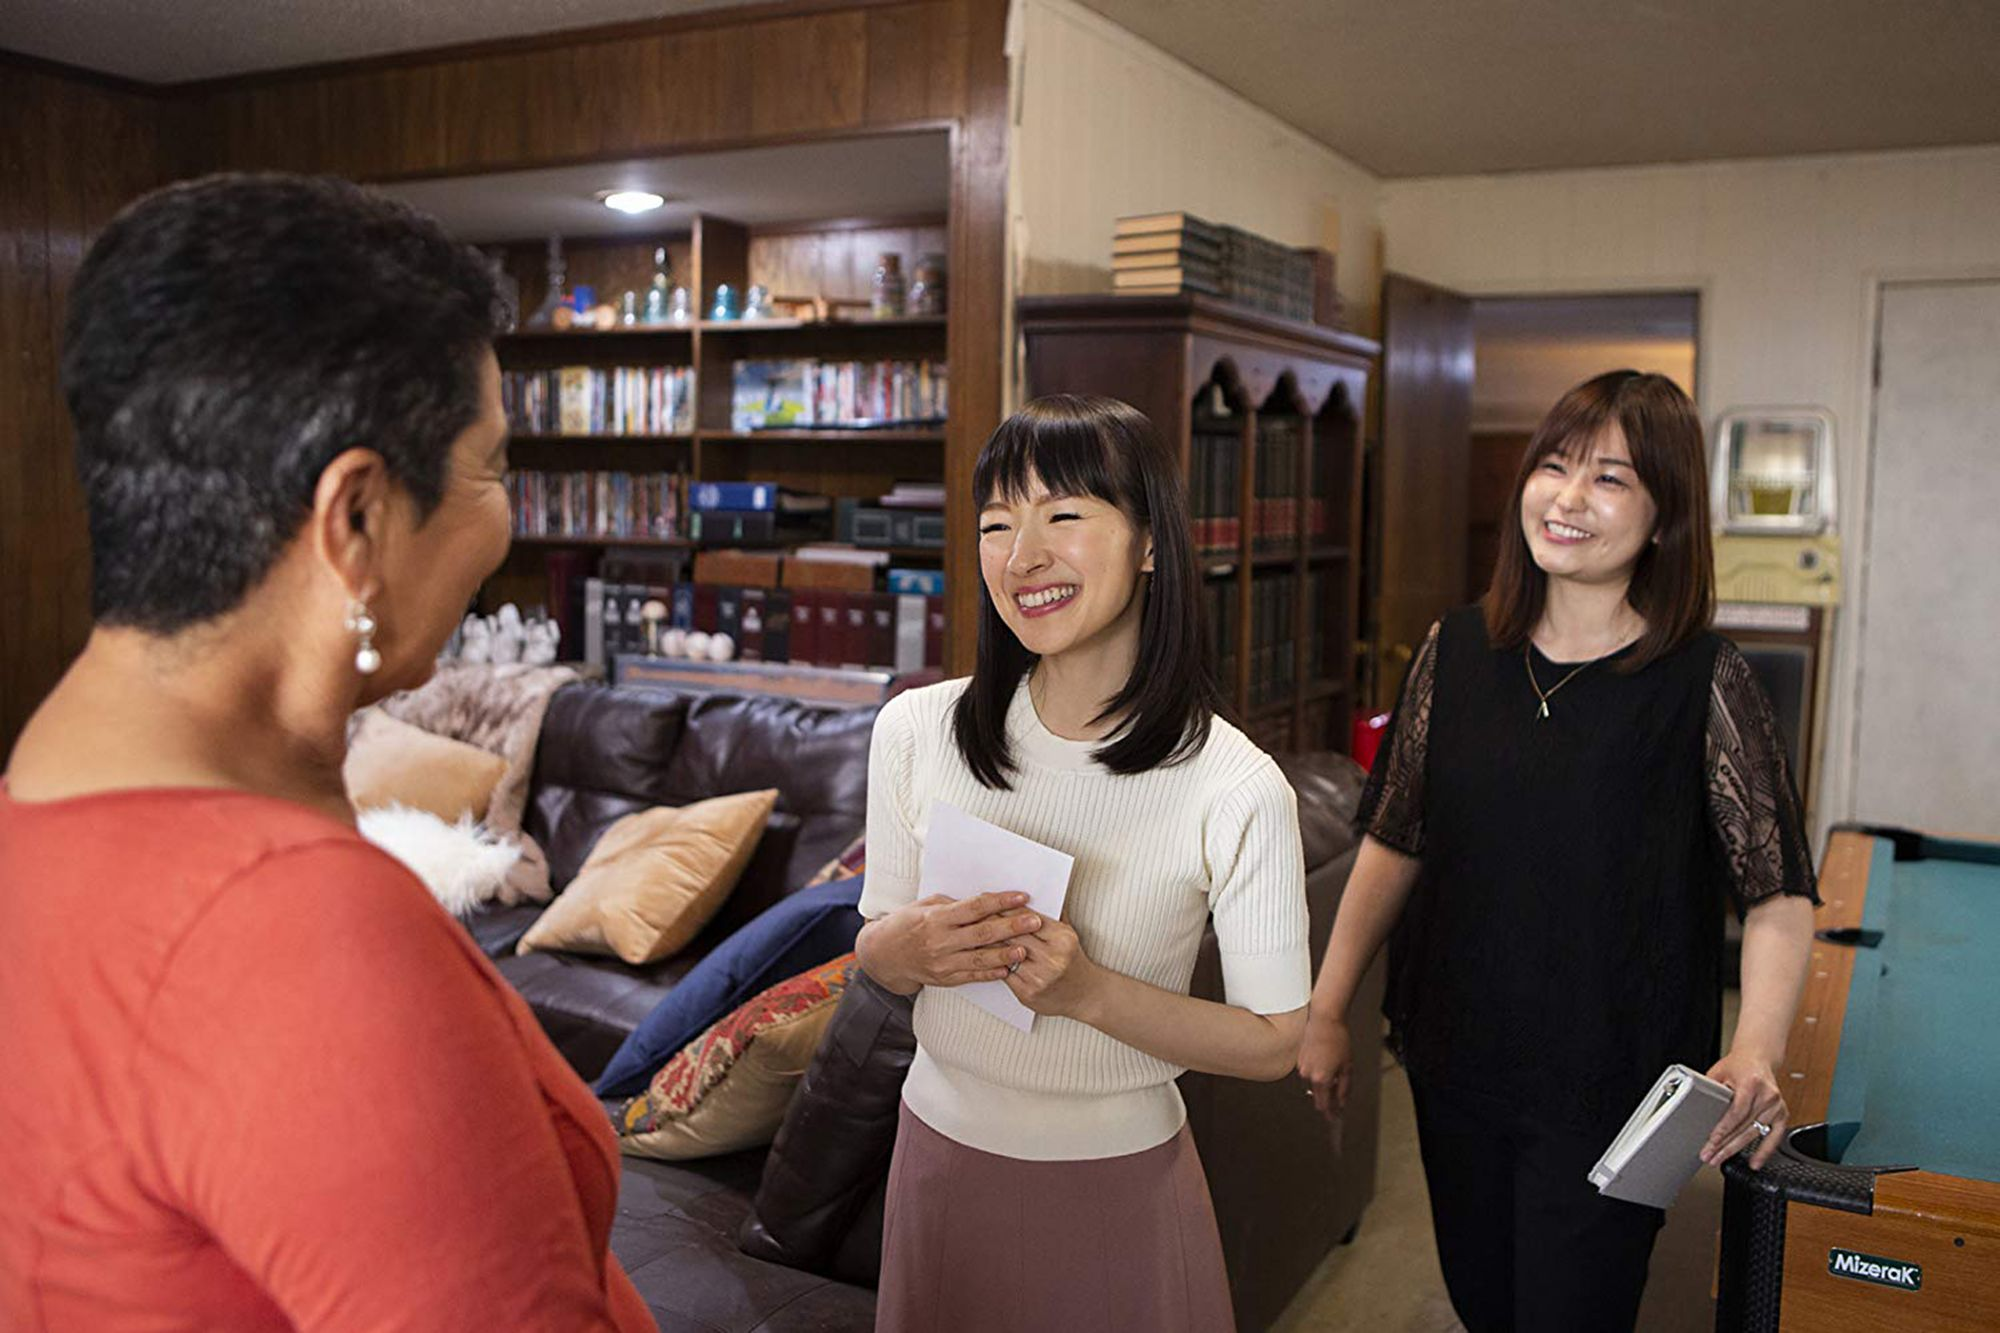 Organization Guru Marie Kondo's Netflix Show Transforms People's Homes and Their Lives. Learn Her Simple Method to Increase Joy and Decrease Clutter.